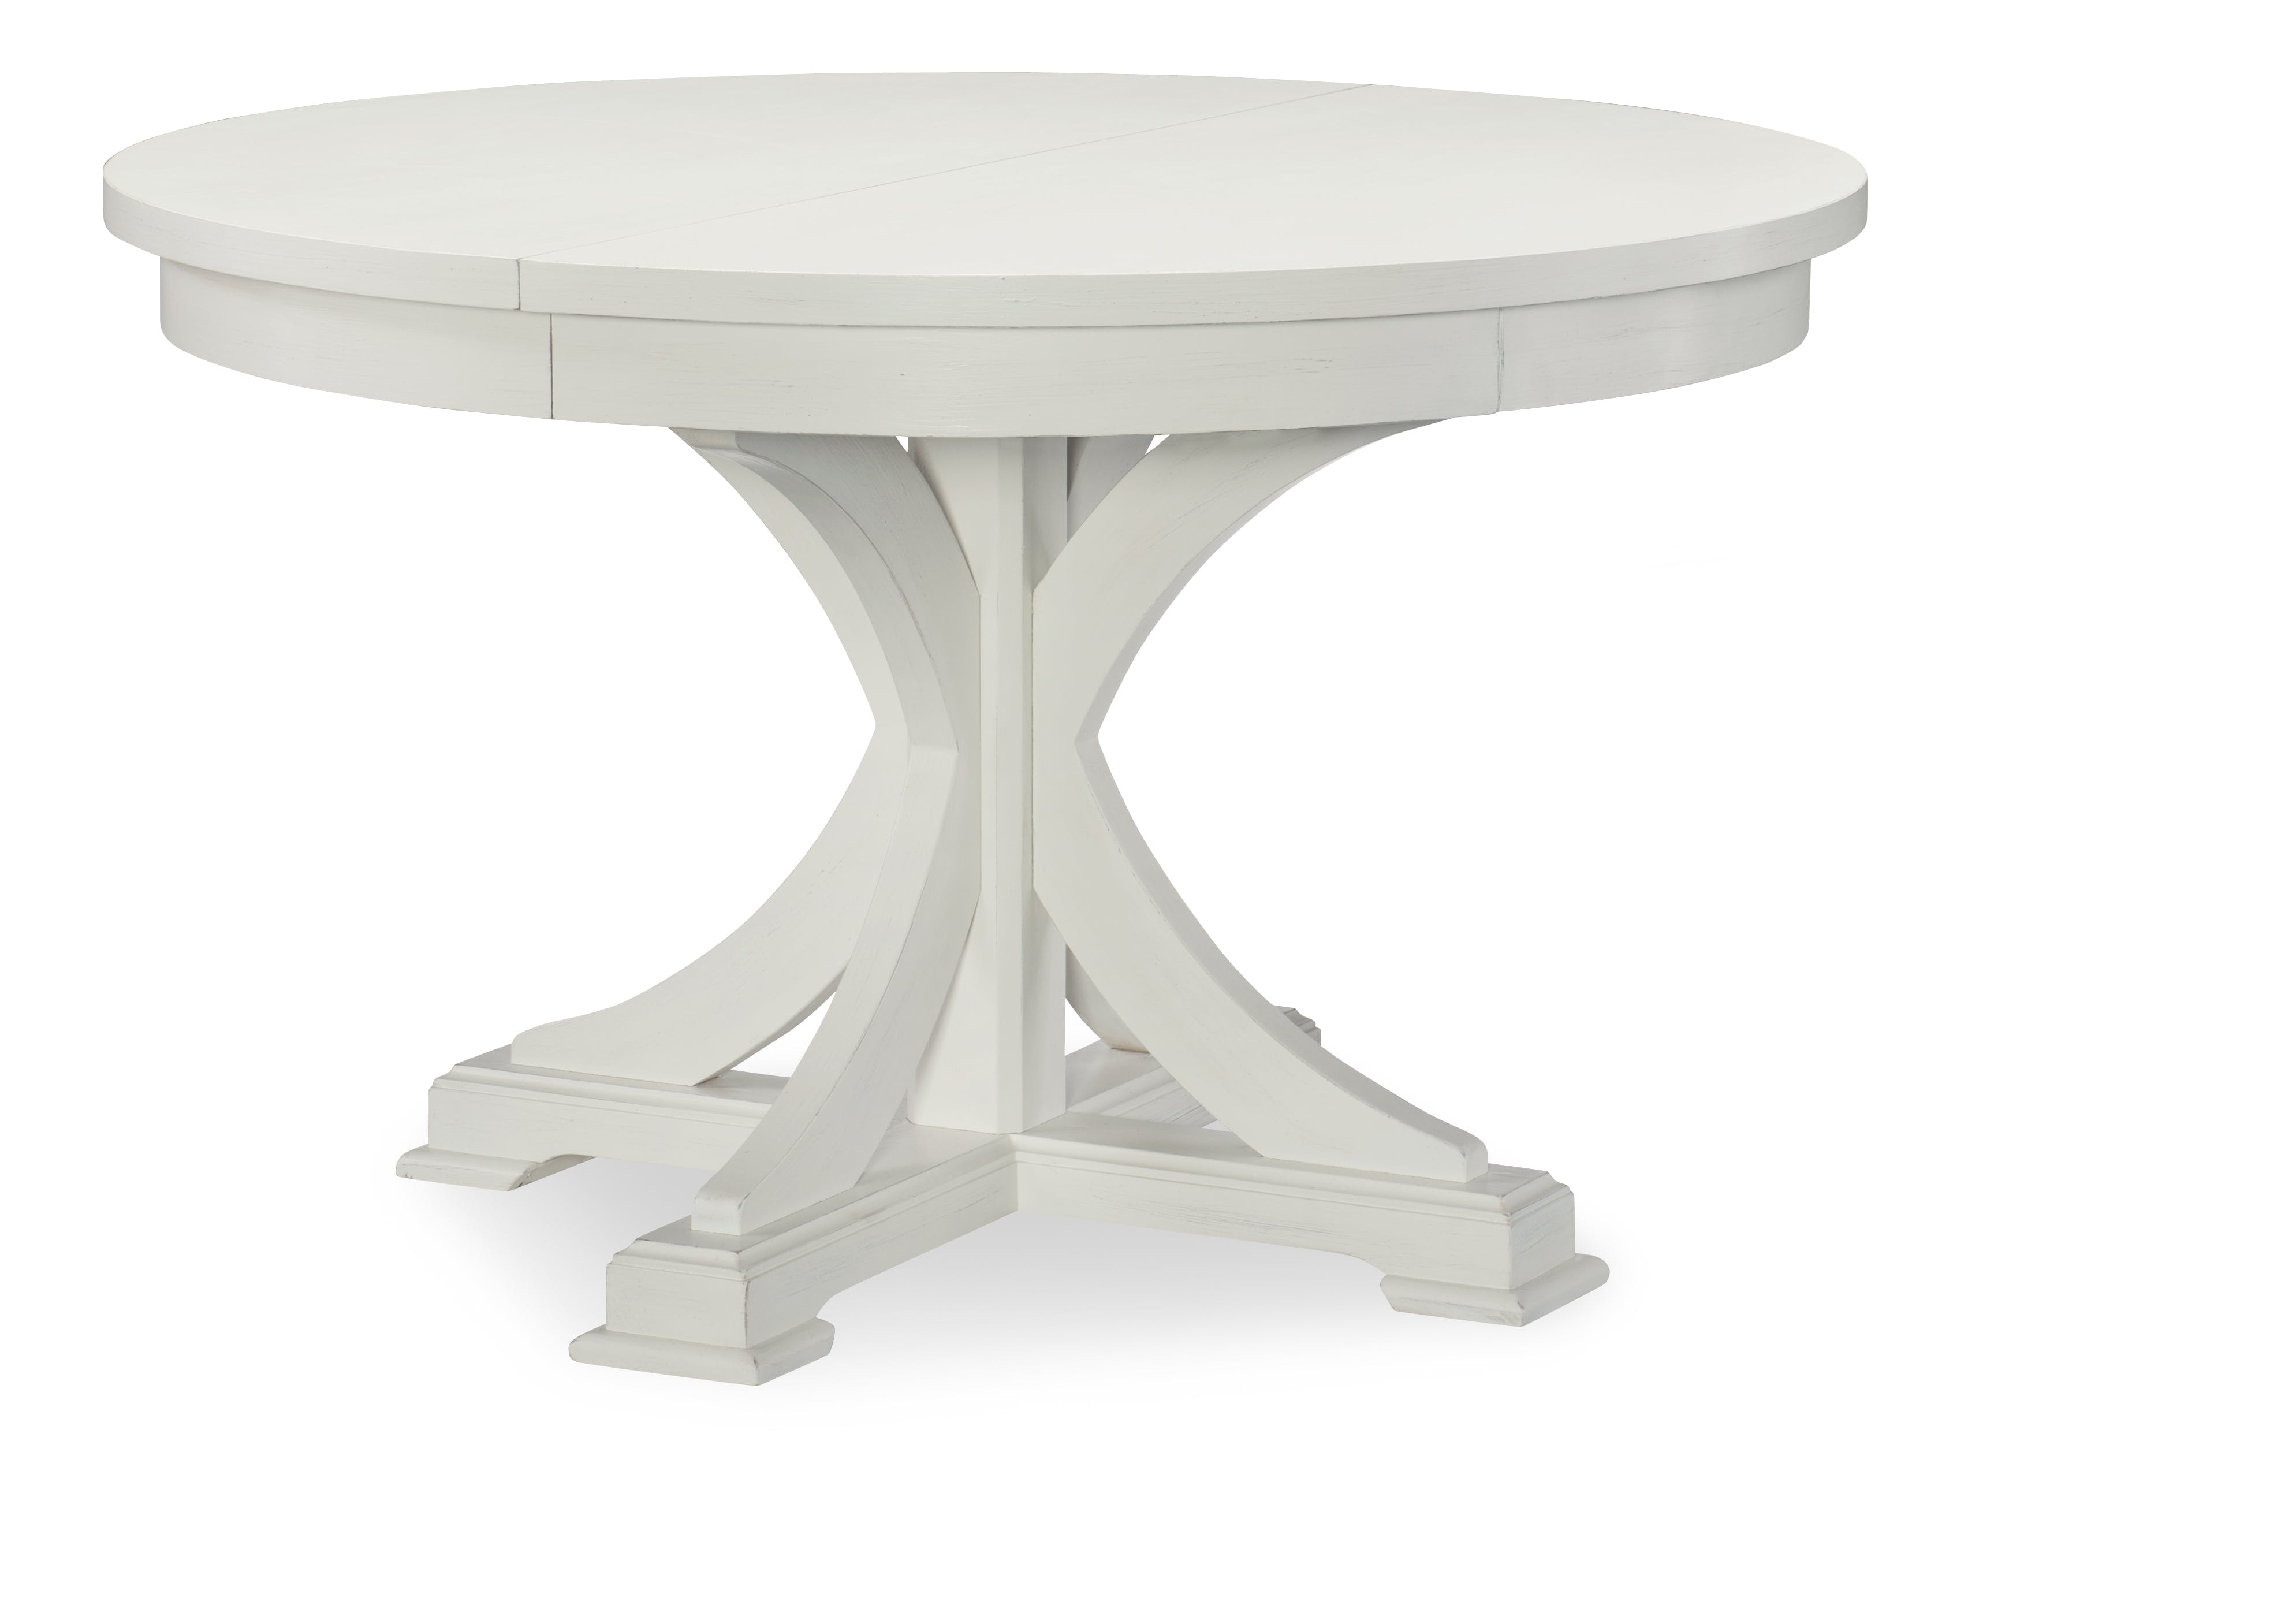 Round to Oval Pedestal Table - Sea Salt QL7004521K